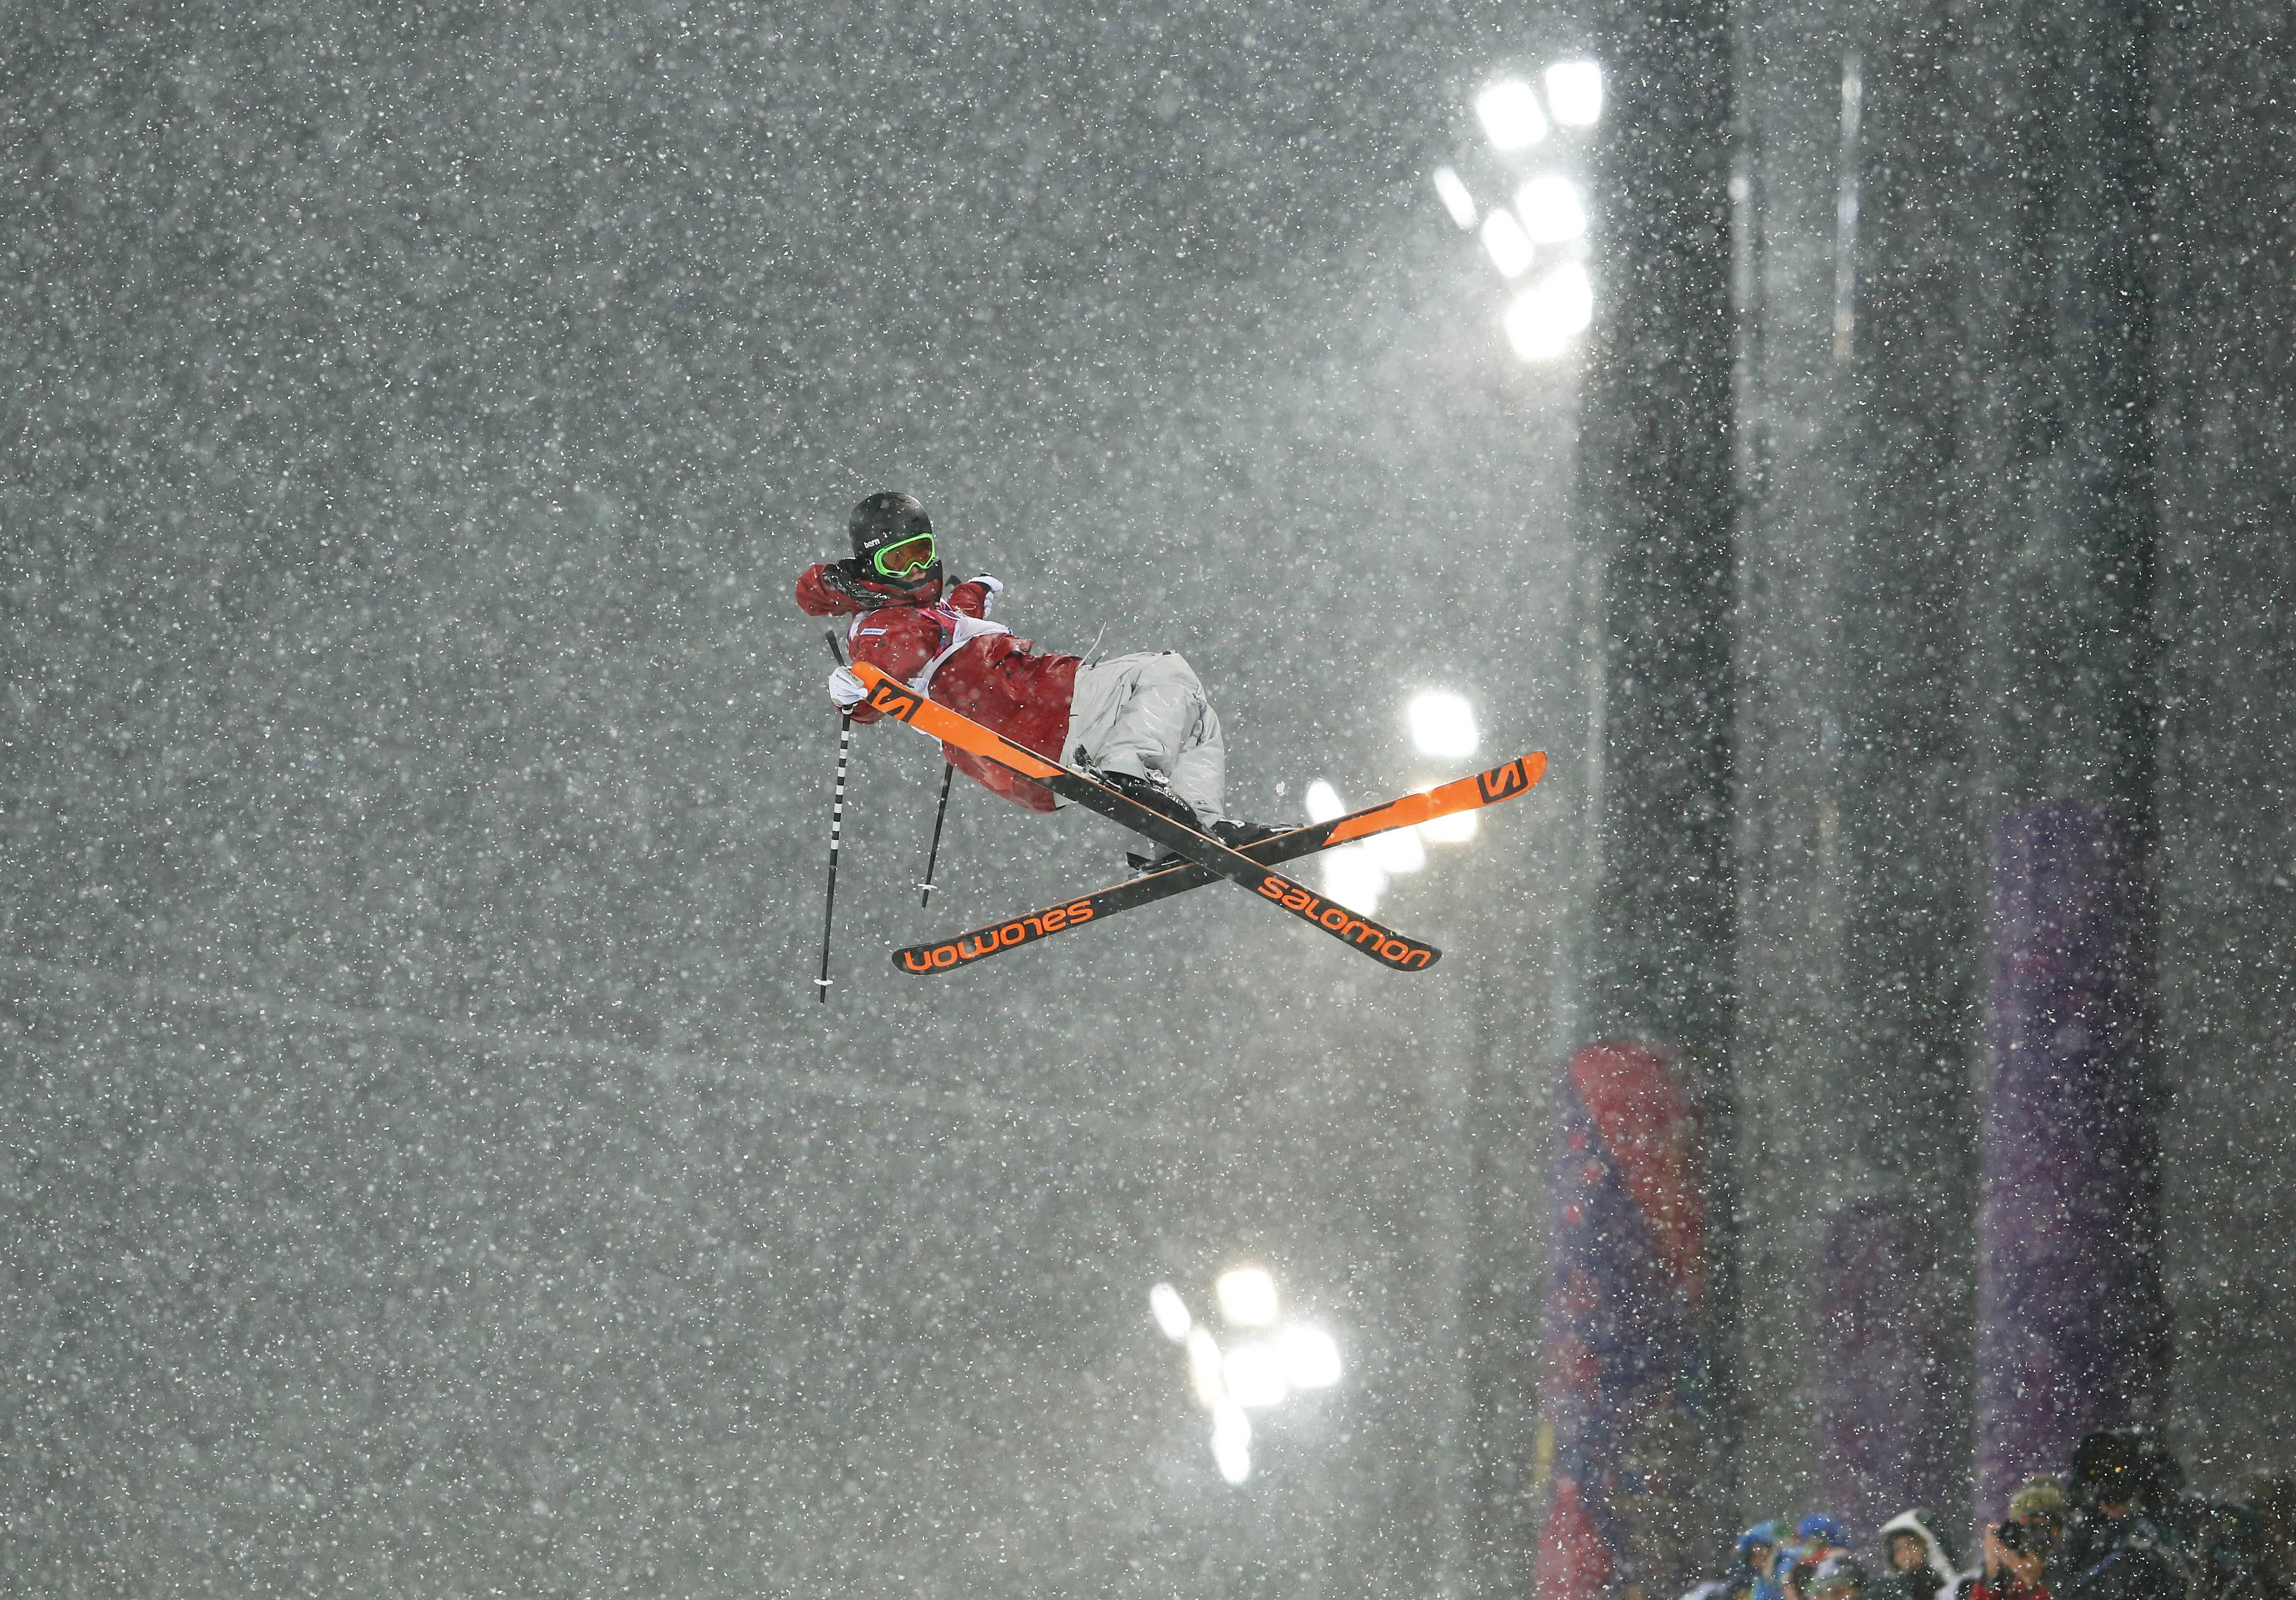 Canada's Noah Bowman gets air during the men's ski halfpipe final.